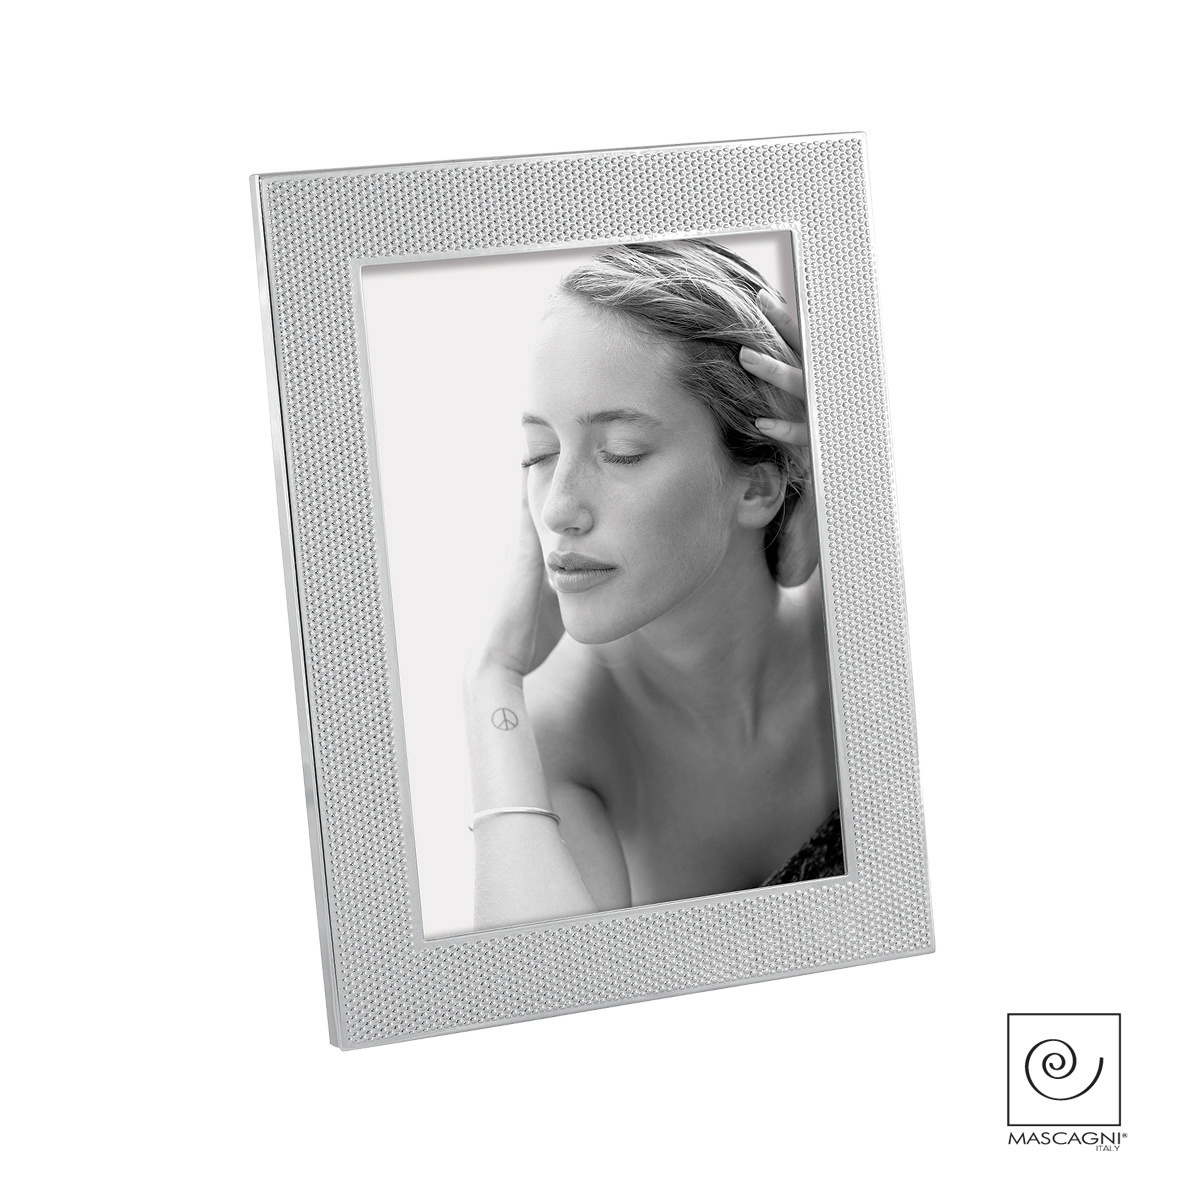 Art Mascagni A678 PHOTO FRAME 13X18